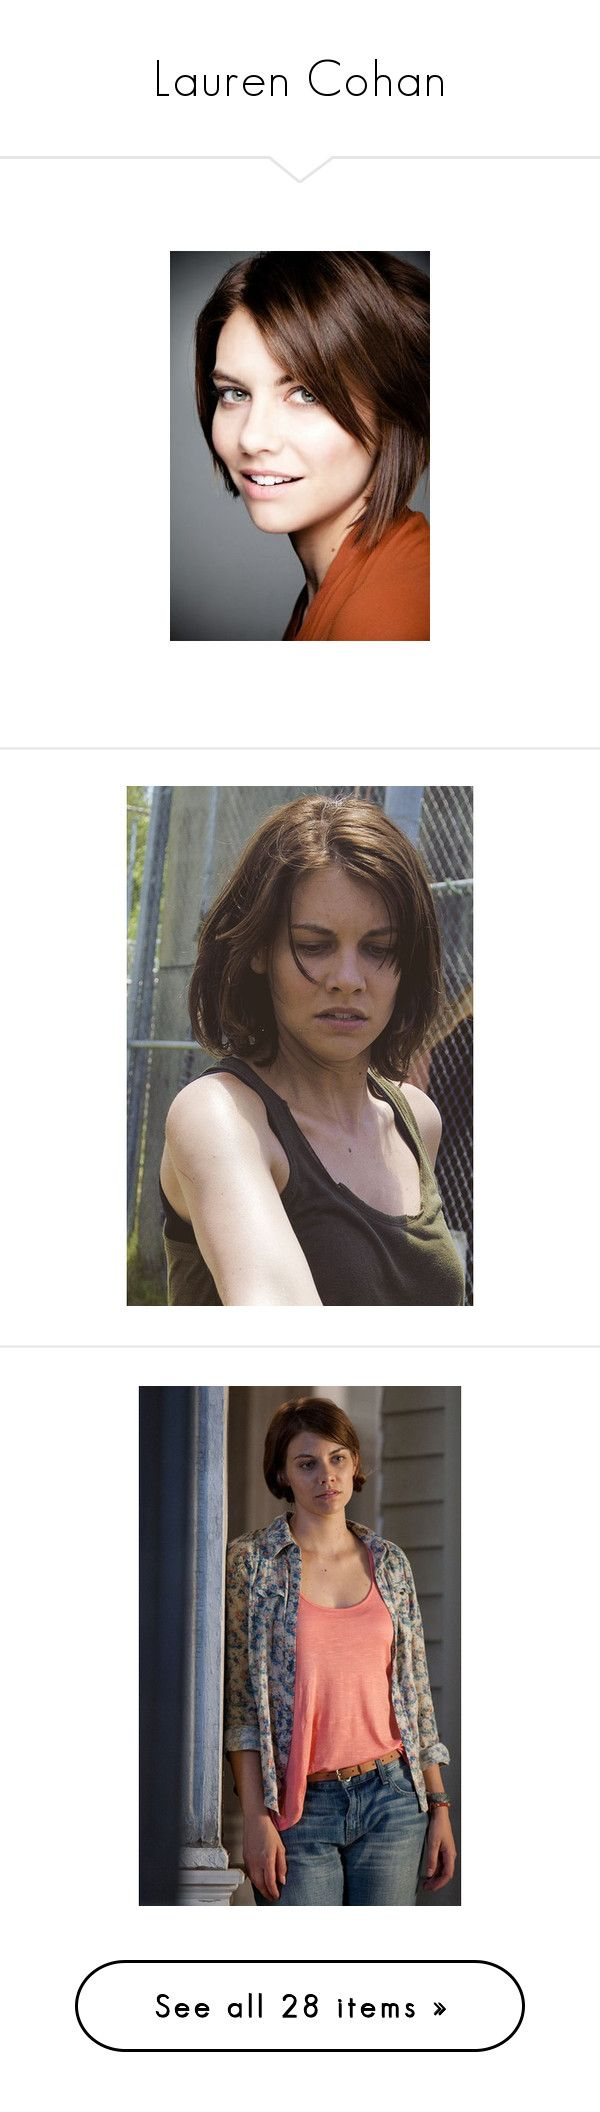 """""""Lauren Cohan"""" by starlightpa ❤ liked on Polyvore featuring the walking dead, walking dead, the vampire diaries, vampire diaries, twd, lauren cohan, people and nina dobrev"""